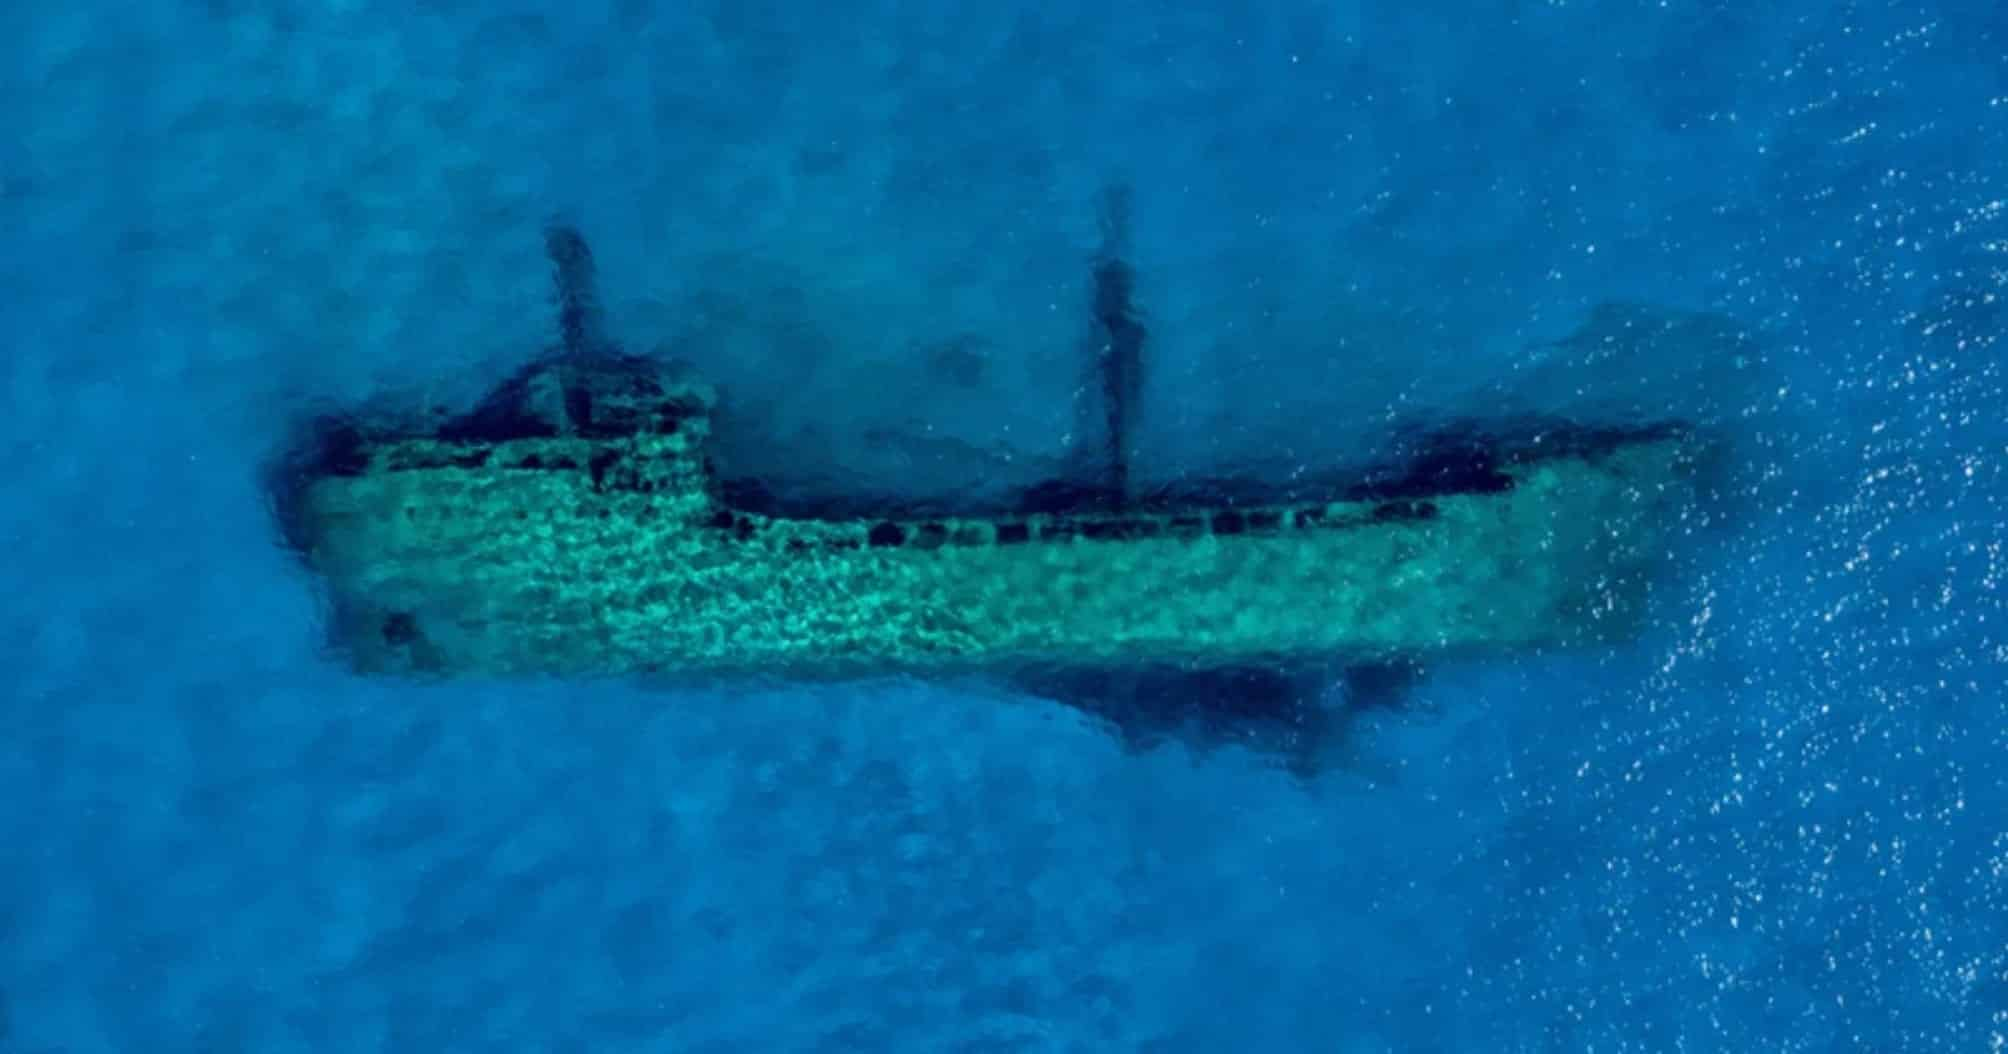 Shipwrecks in Lake Michigan are easy to spot with a drone